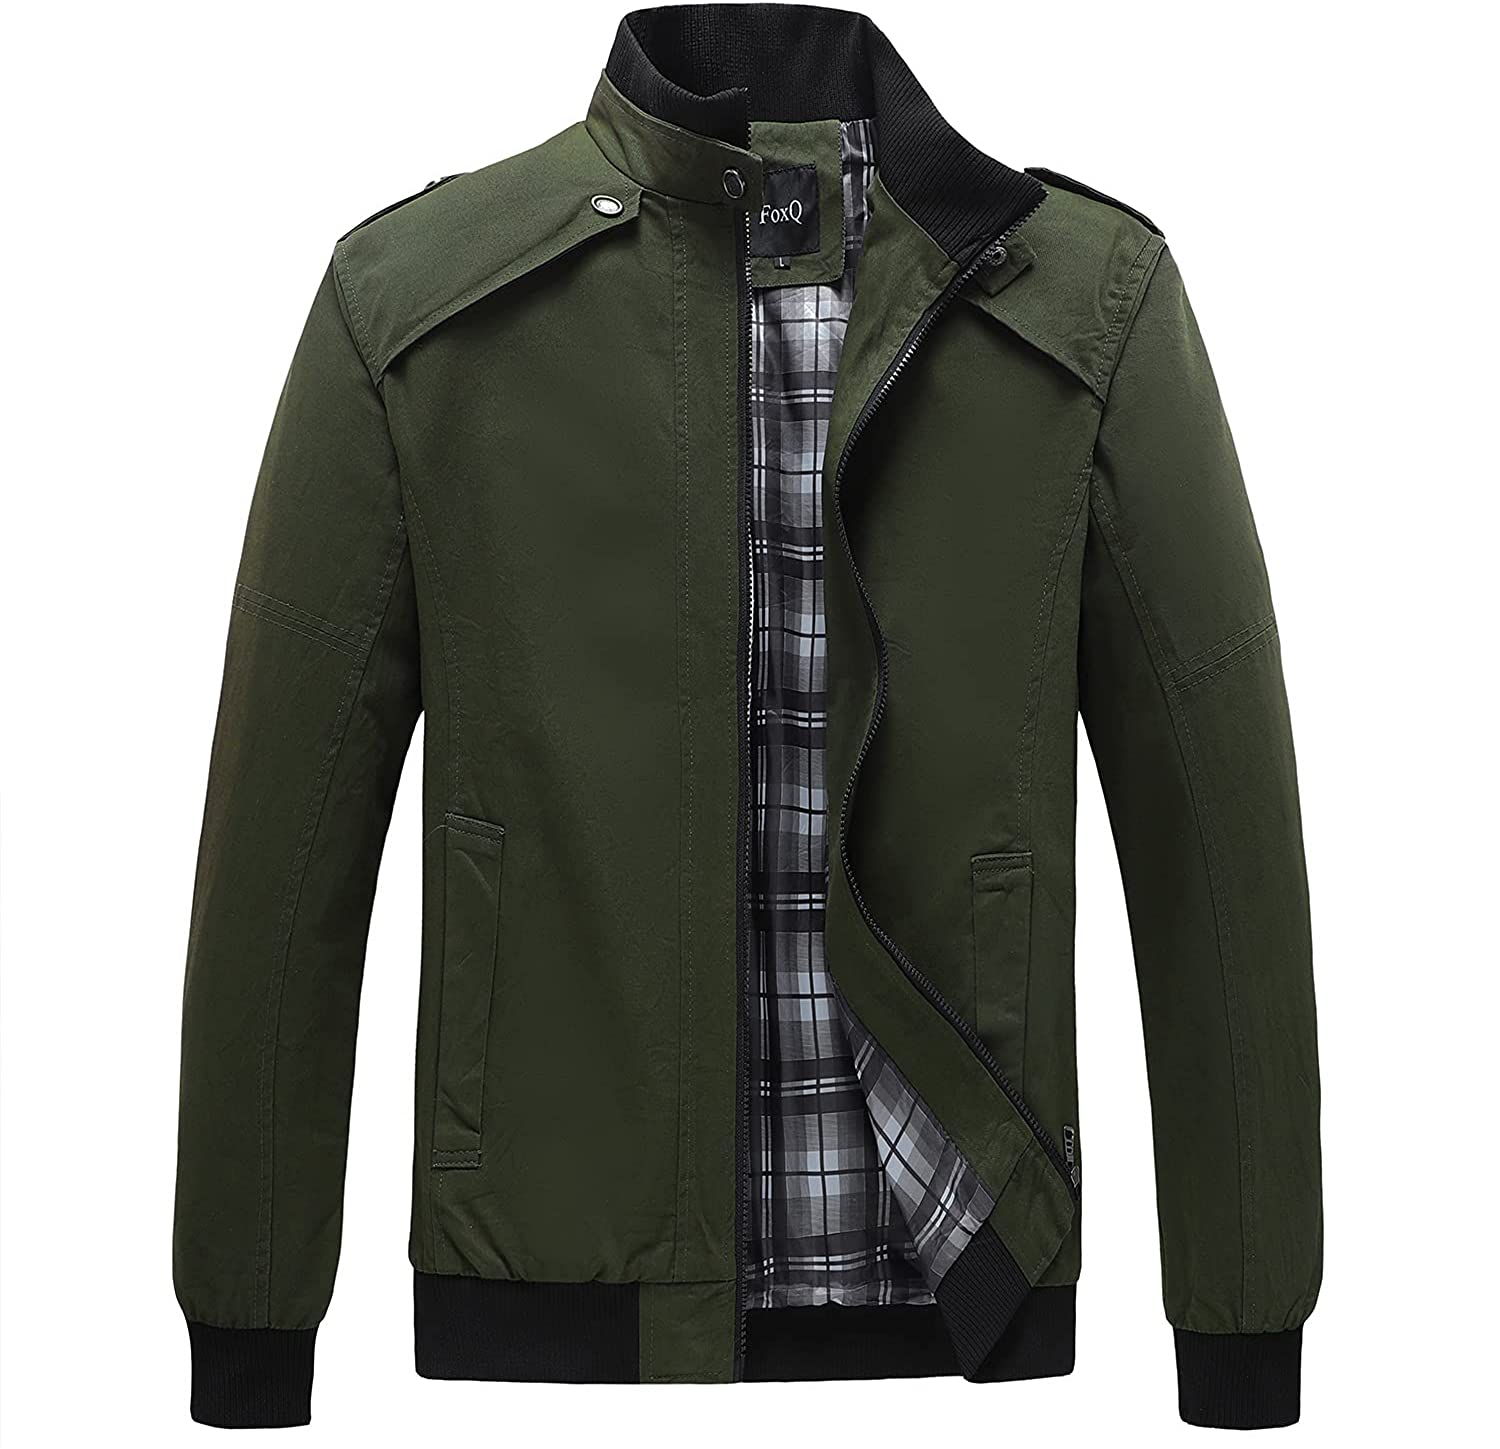 Our Tampa Mall shop OFFers the best service FoxQ Vintage Fashion Slim Fit Washed Thin Mens Cotto Lightweight